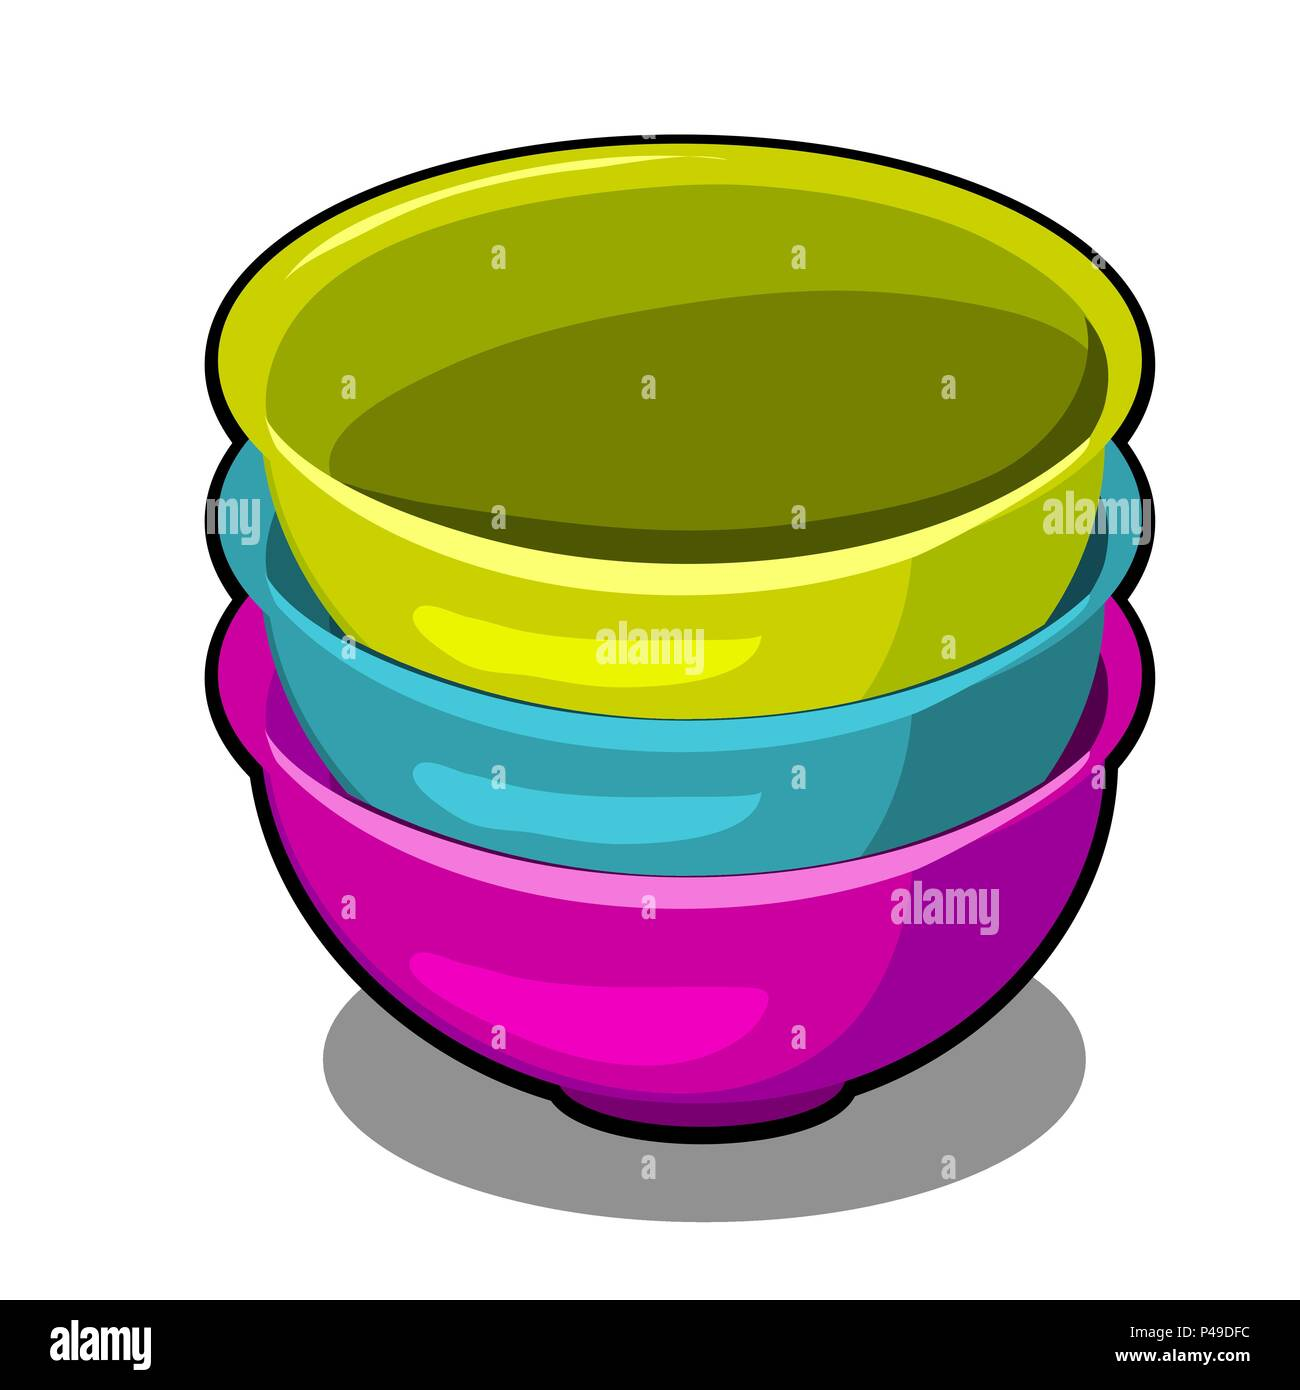 A stack of polymer bowls of different colors isolated on a white background. Cartoon vector close-up illustration. - Stock Vector